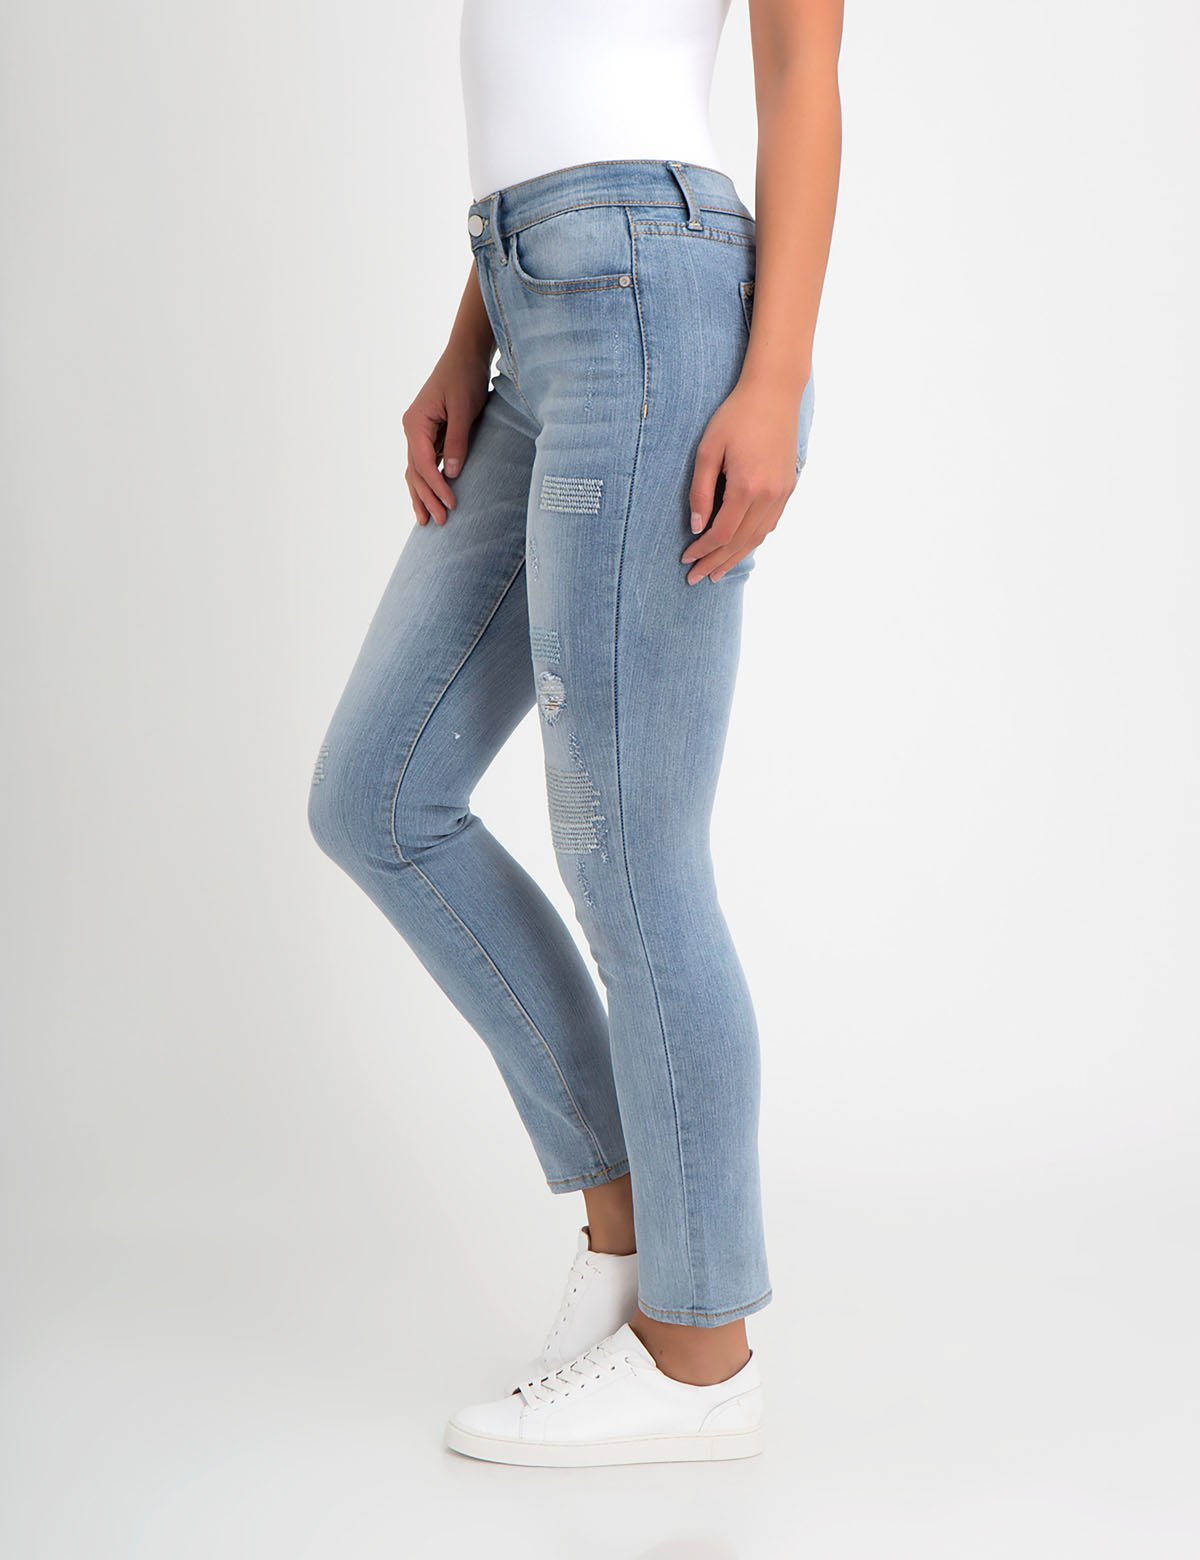 STRETCH SKINNY FIT EMBROIDERY DESTRUCTIVE JEAN